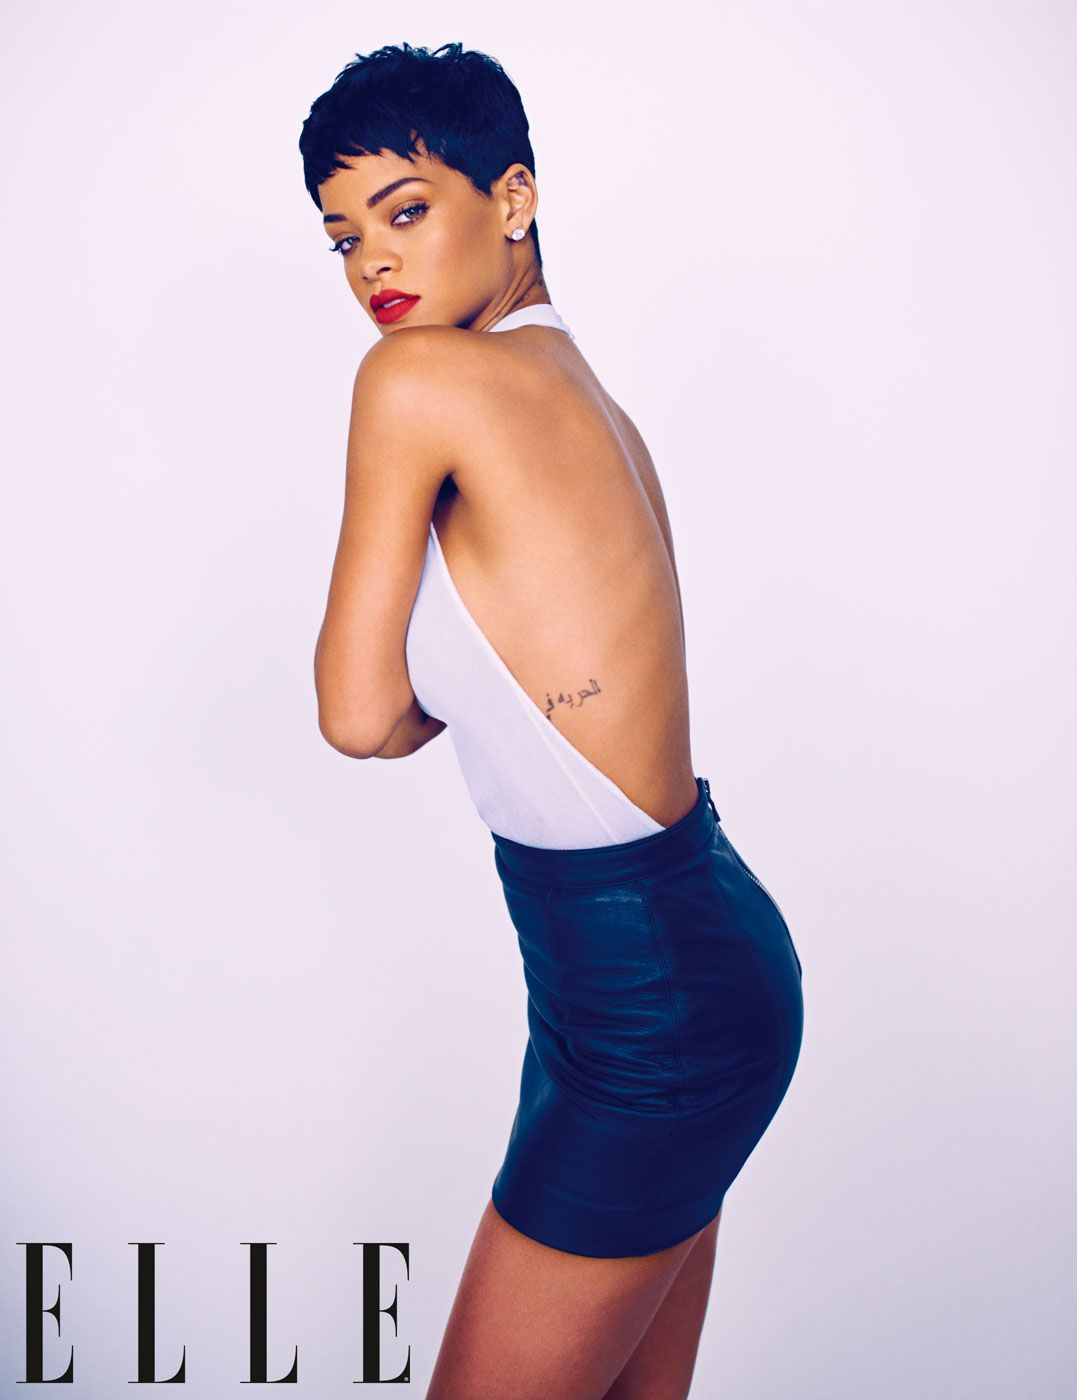 Rihanna_for_Elle_UK_April_2013_05